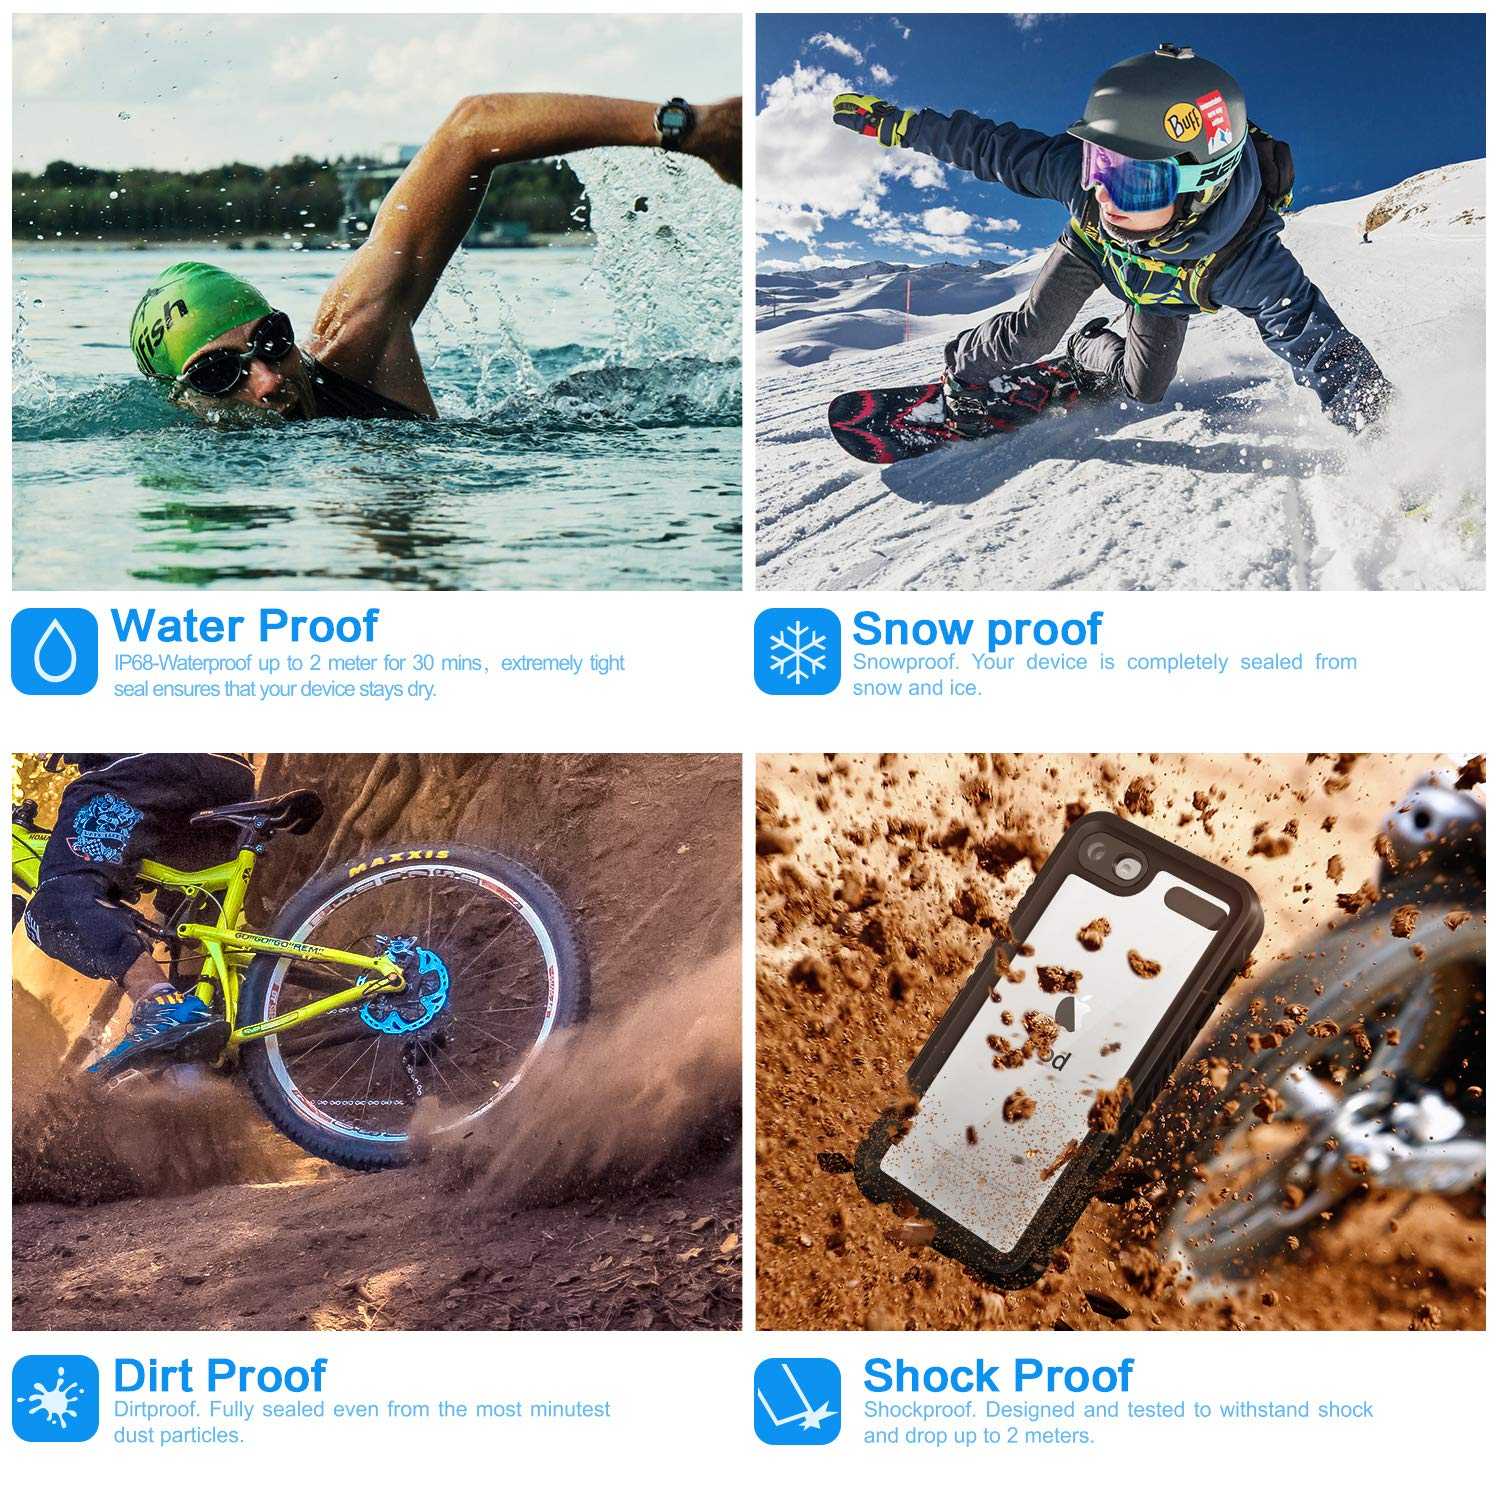 IDweel iPod 7 Case Shockproof Dirt-Proof Snow-Proof Cover and Screen Protector for Apple iPod Touch 7th 6th //5th Generation,Black Waterproof Case for iPod Touch 7//6// 5